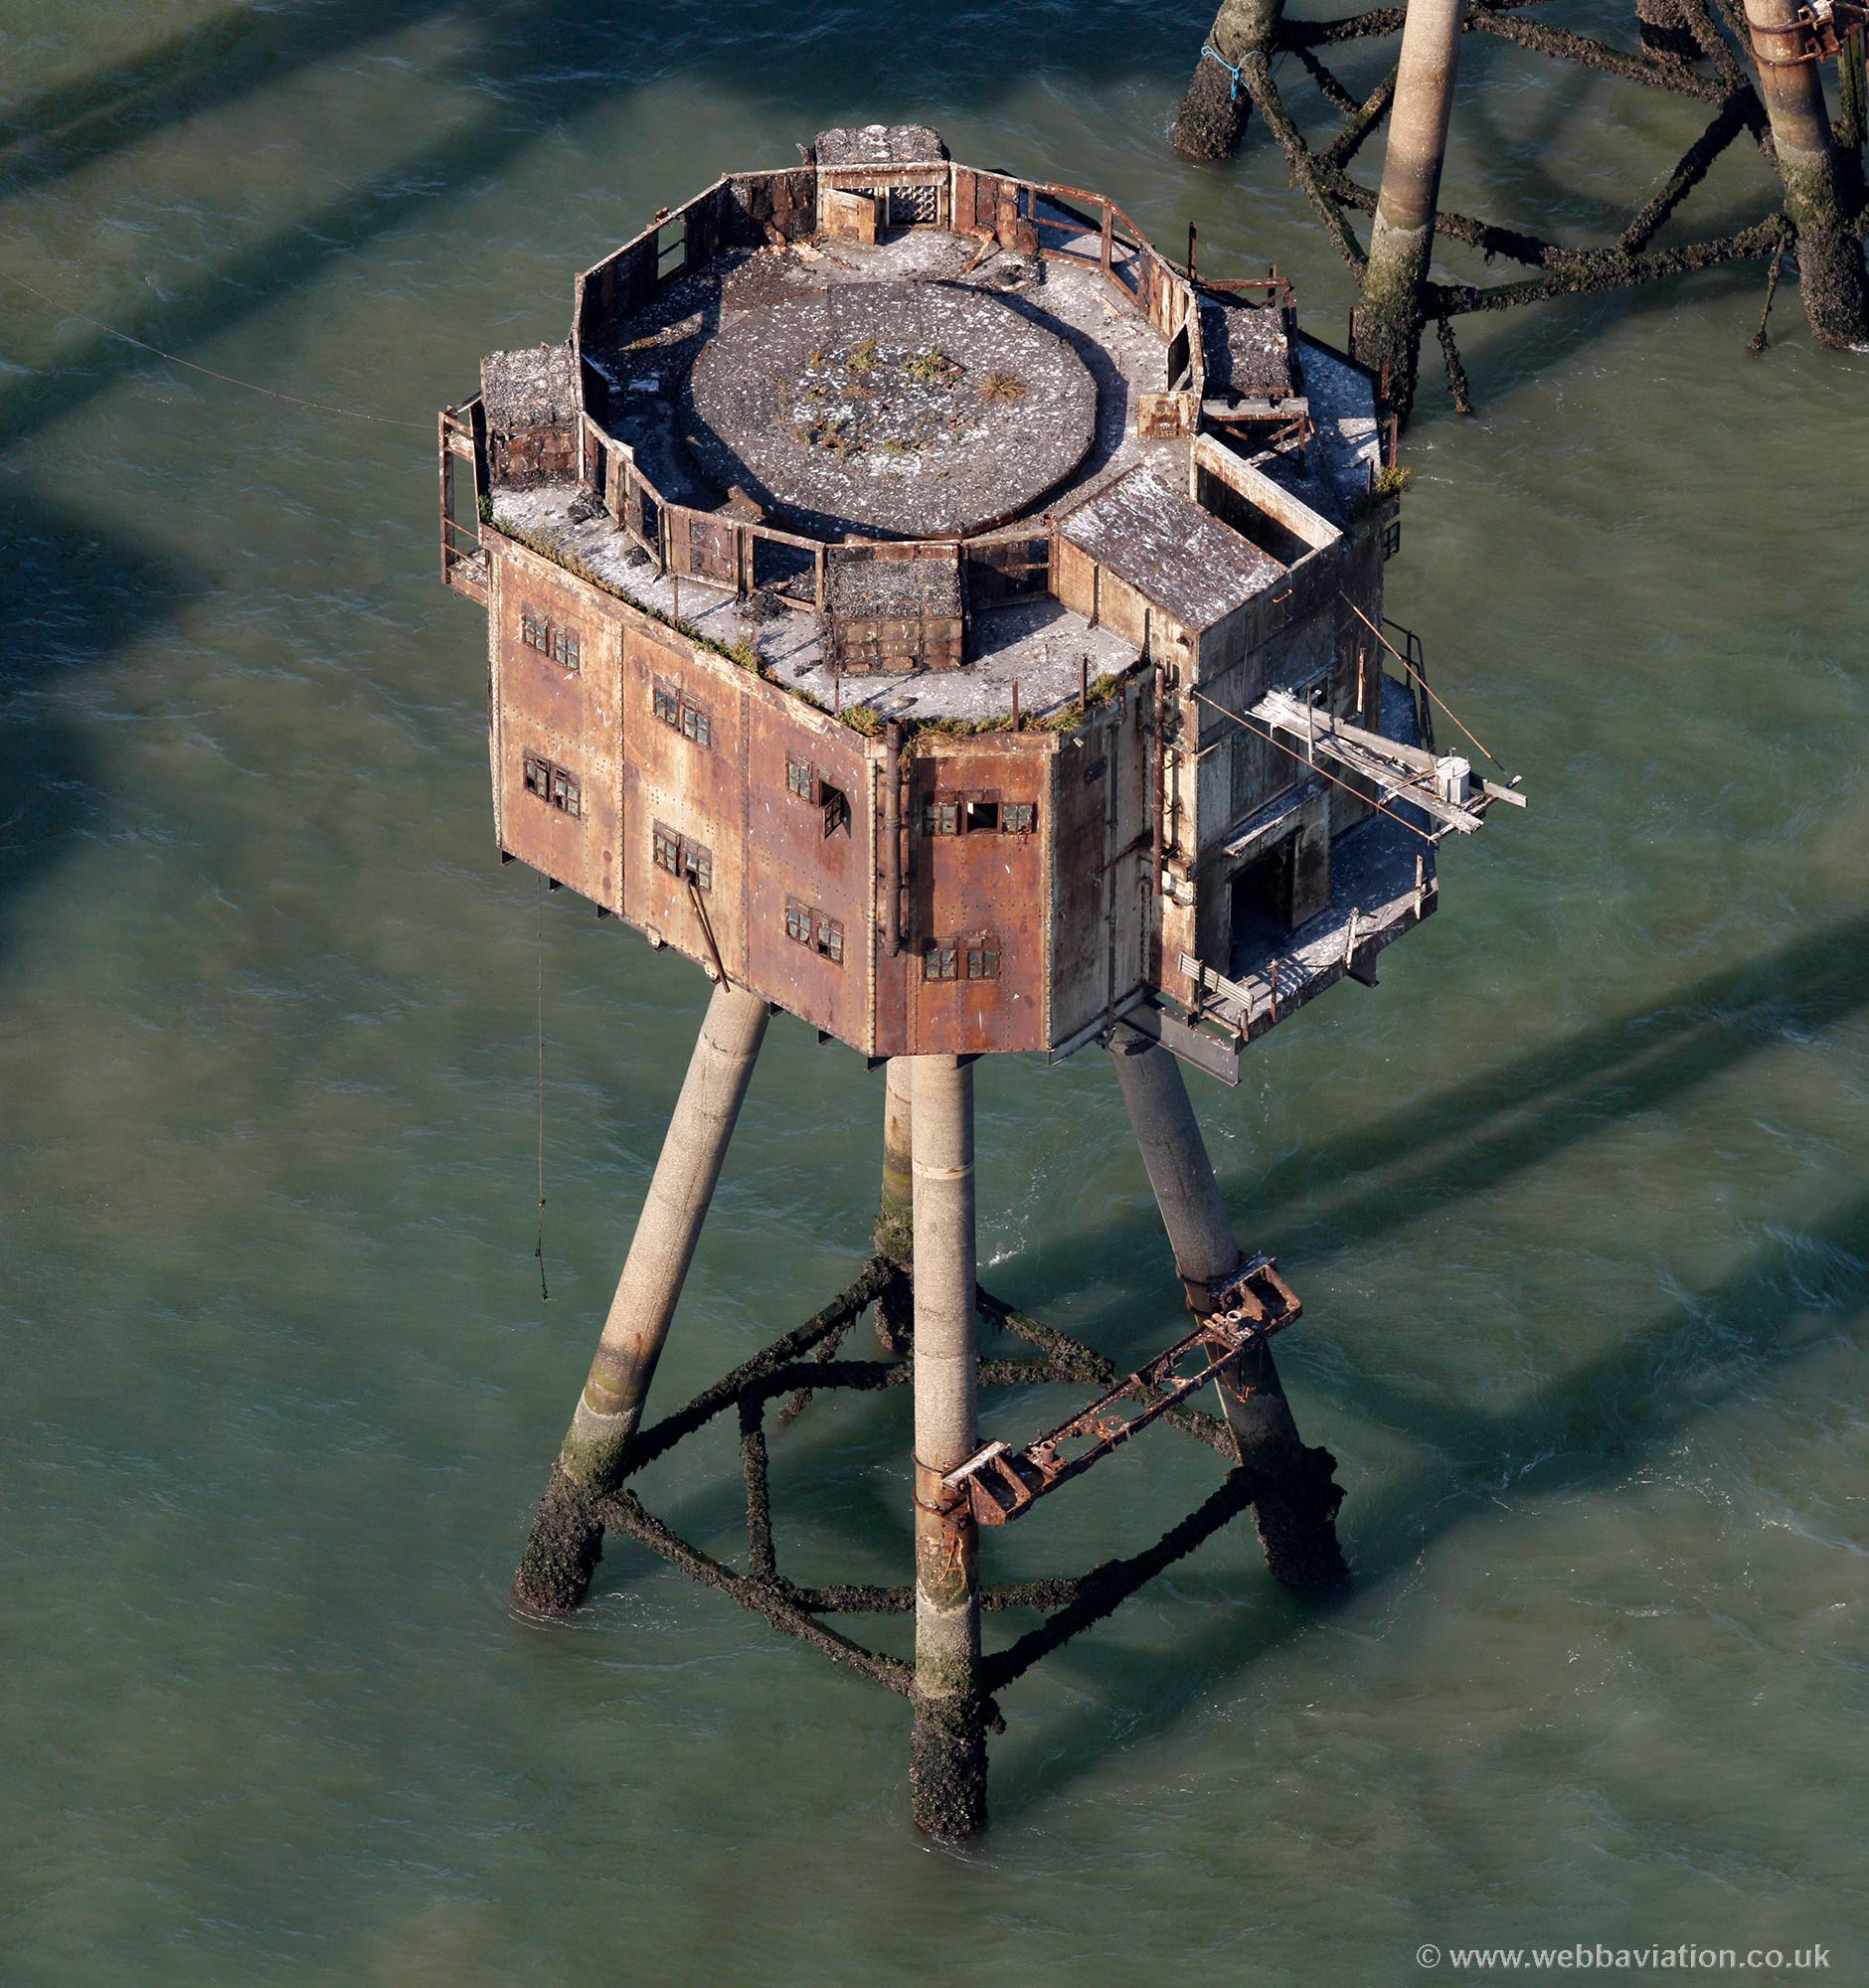 Maunsell Sea Forts aerial photograph